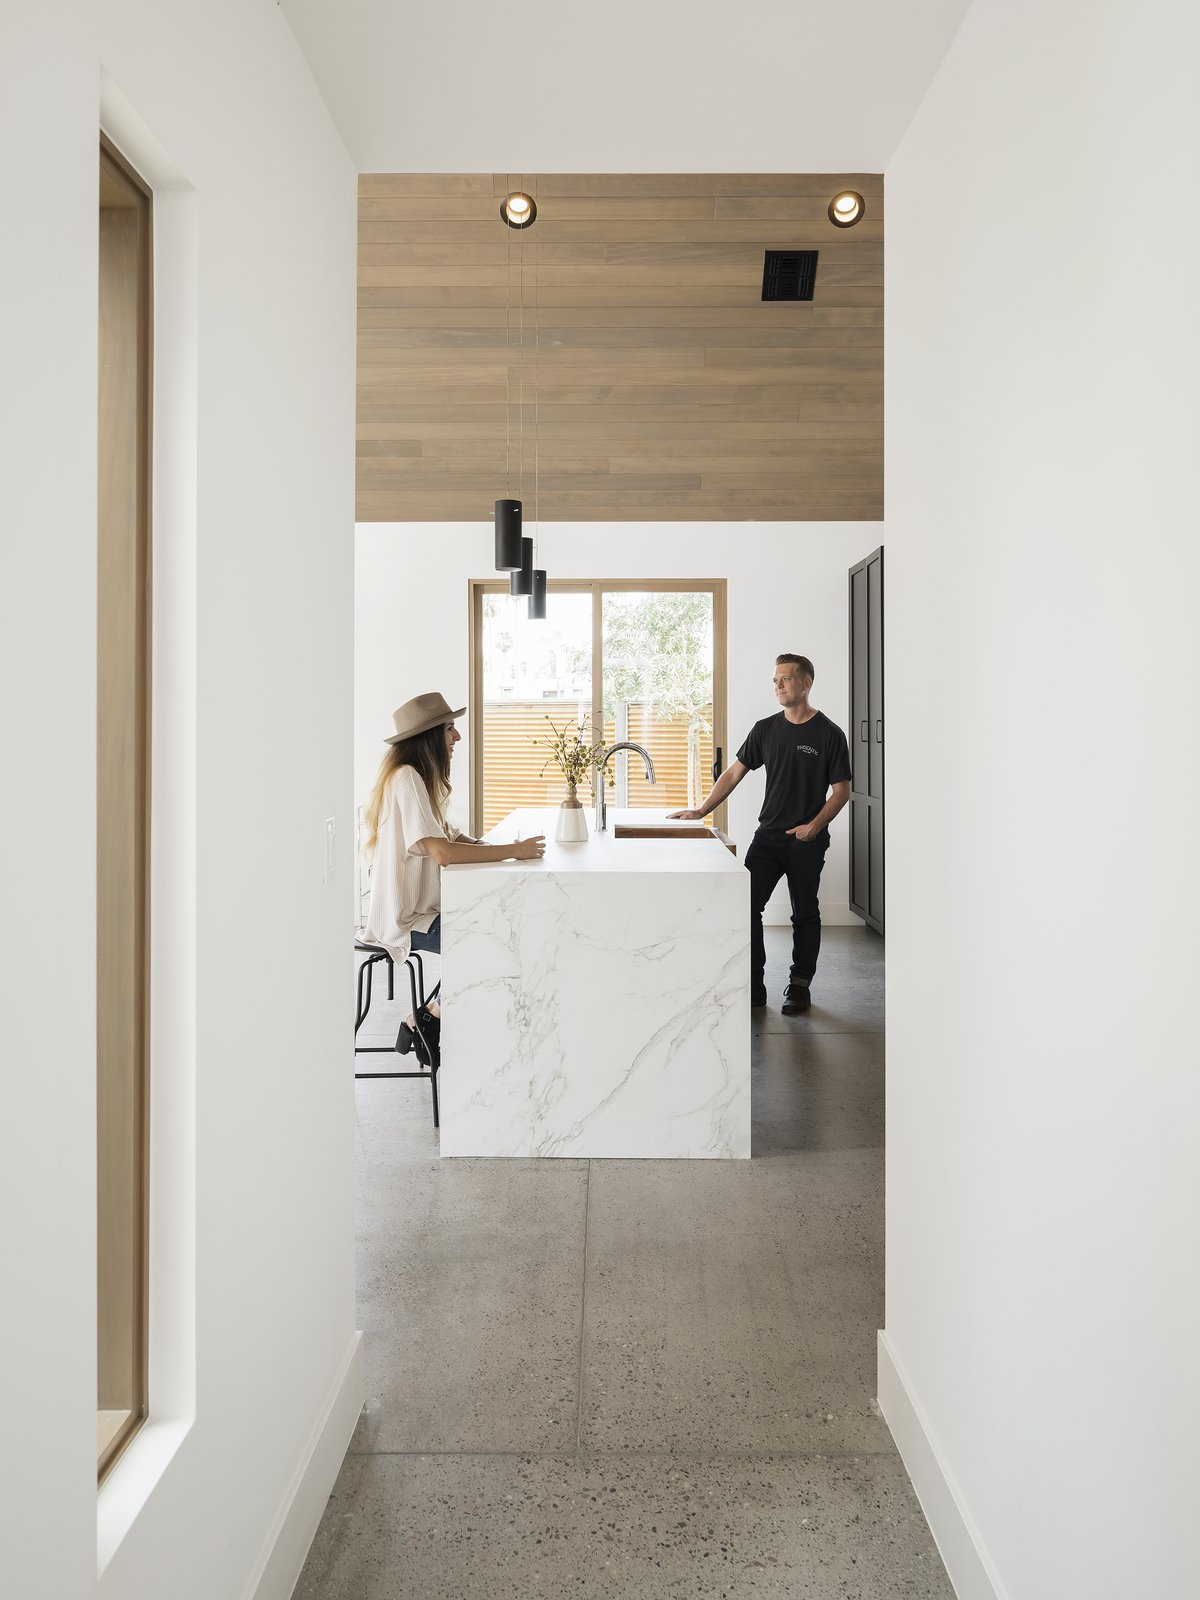 Waterfall edge on the Dekton counter. The floors are exposed aggregate concrete Tagged: Kitchen, Engineered Quartz Counter, and Pendant Lighting. Canal House by The Ranch Mine